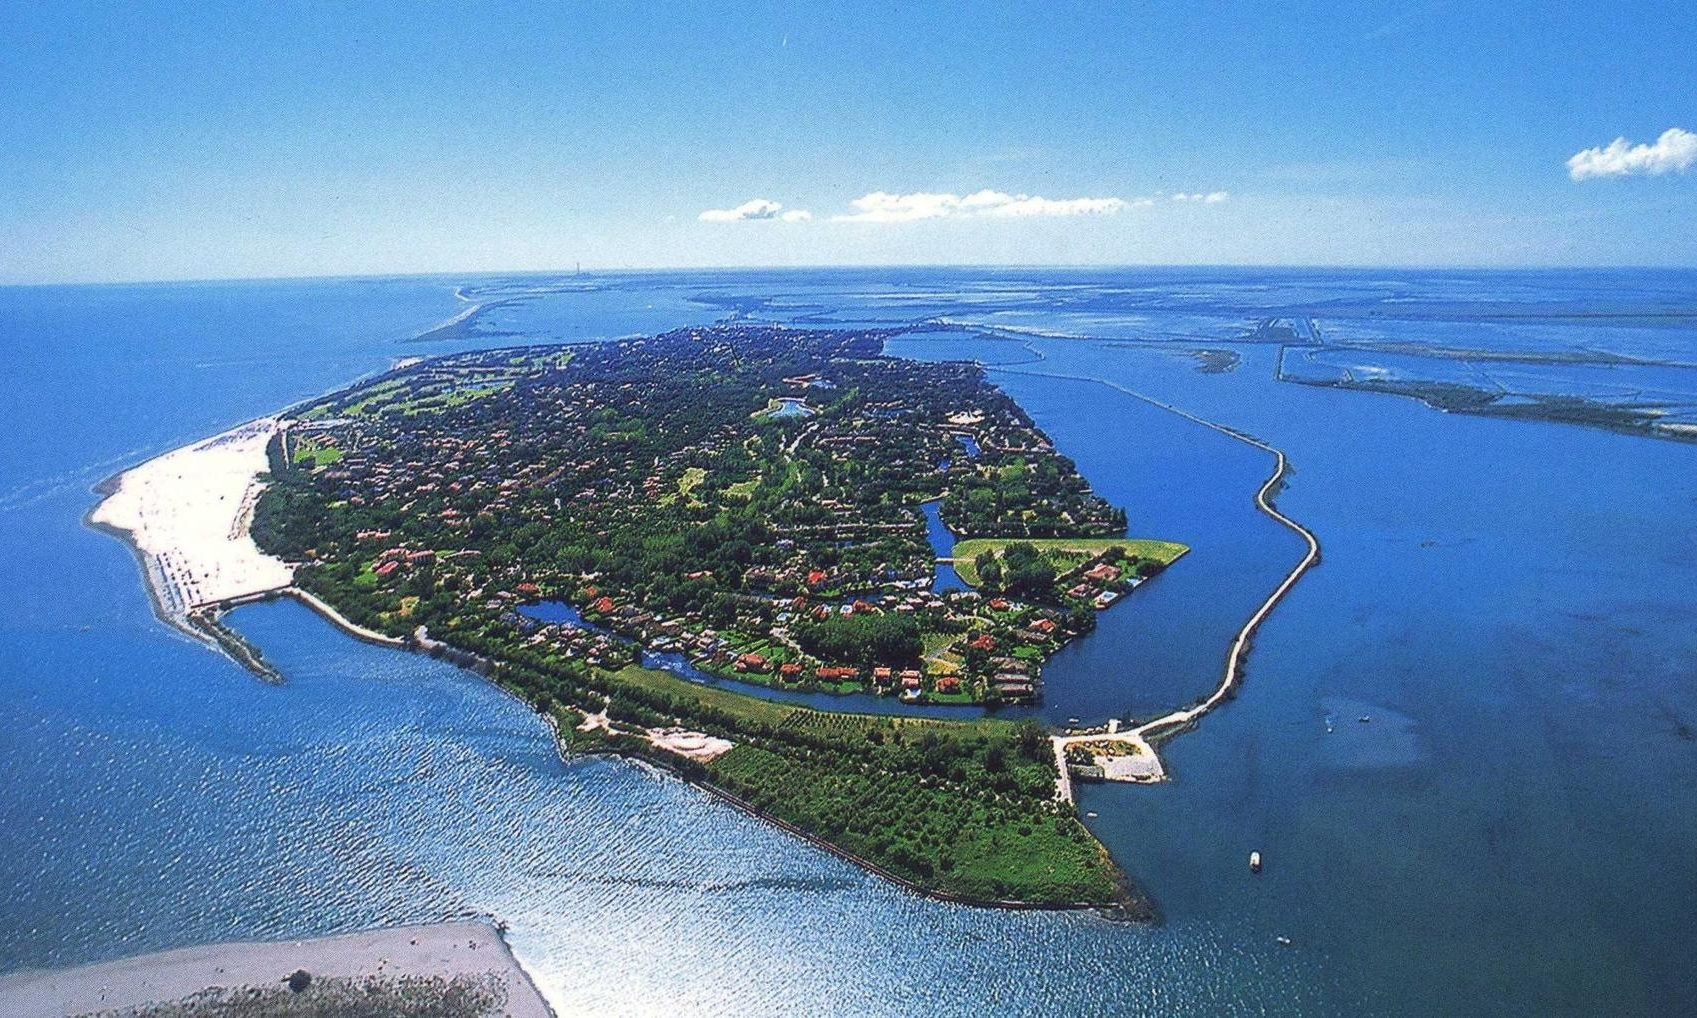 Albarella Island in a lagoon just south of Venice